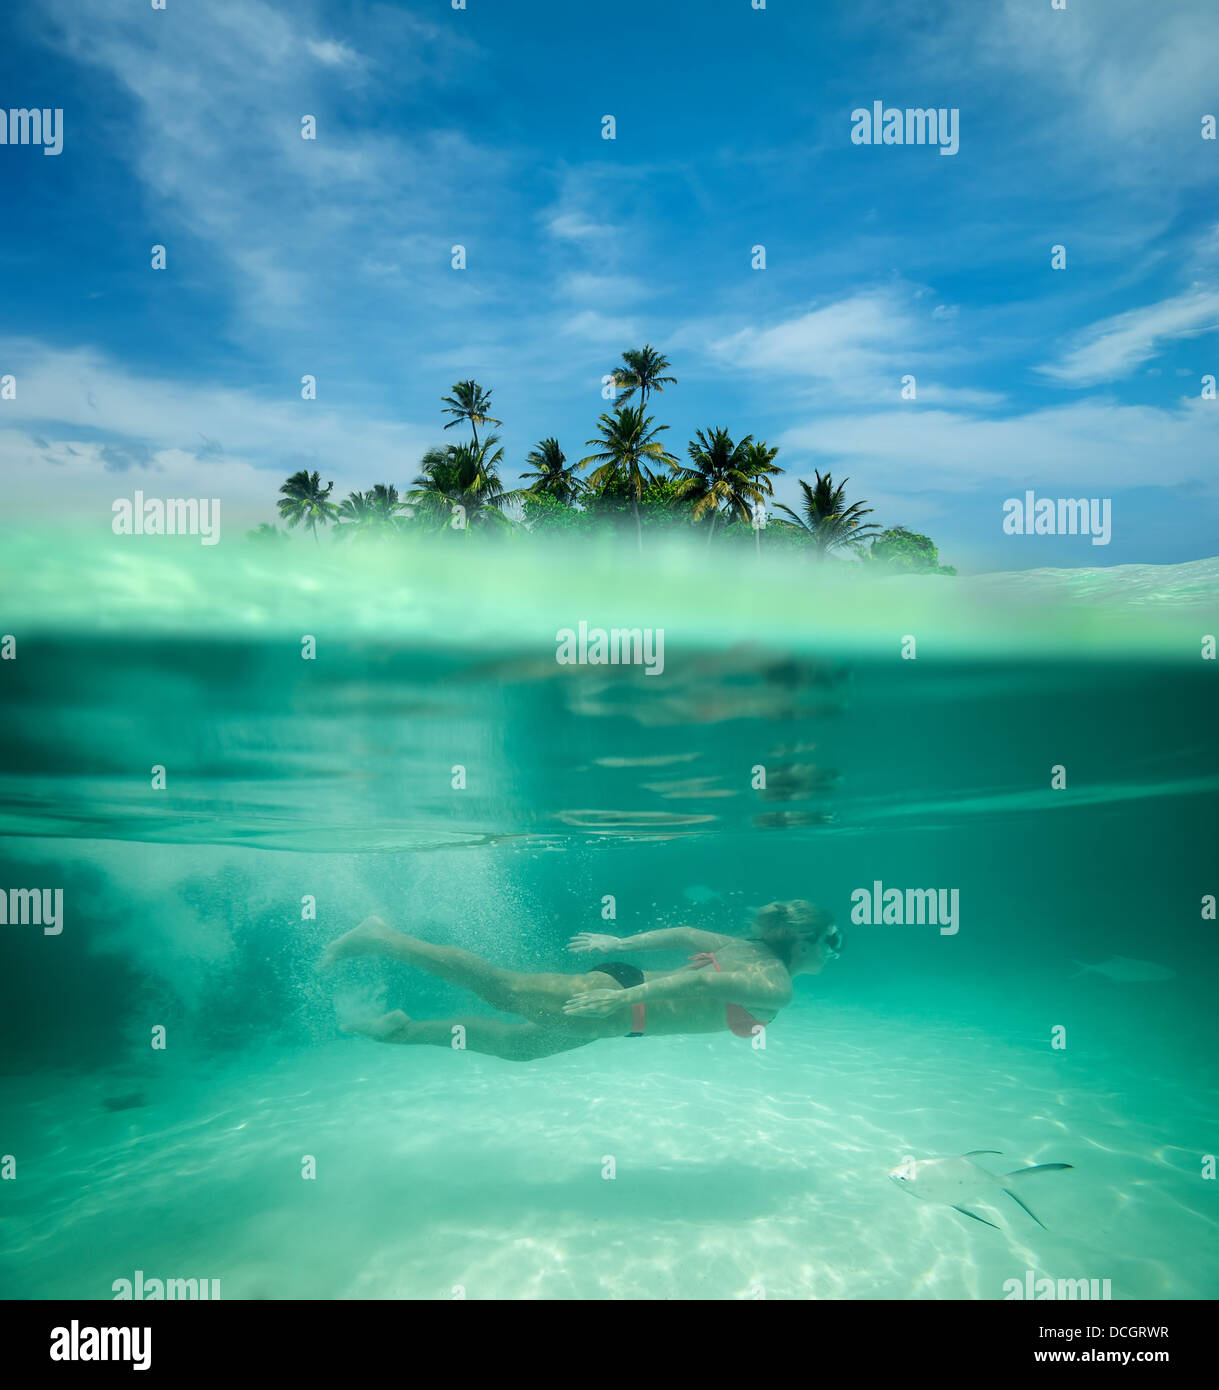 Woman snorkeling in a tropical lagoon - Stock Image